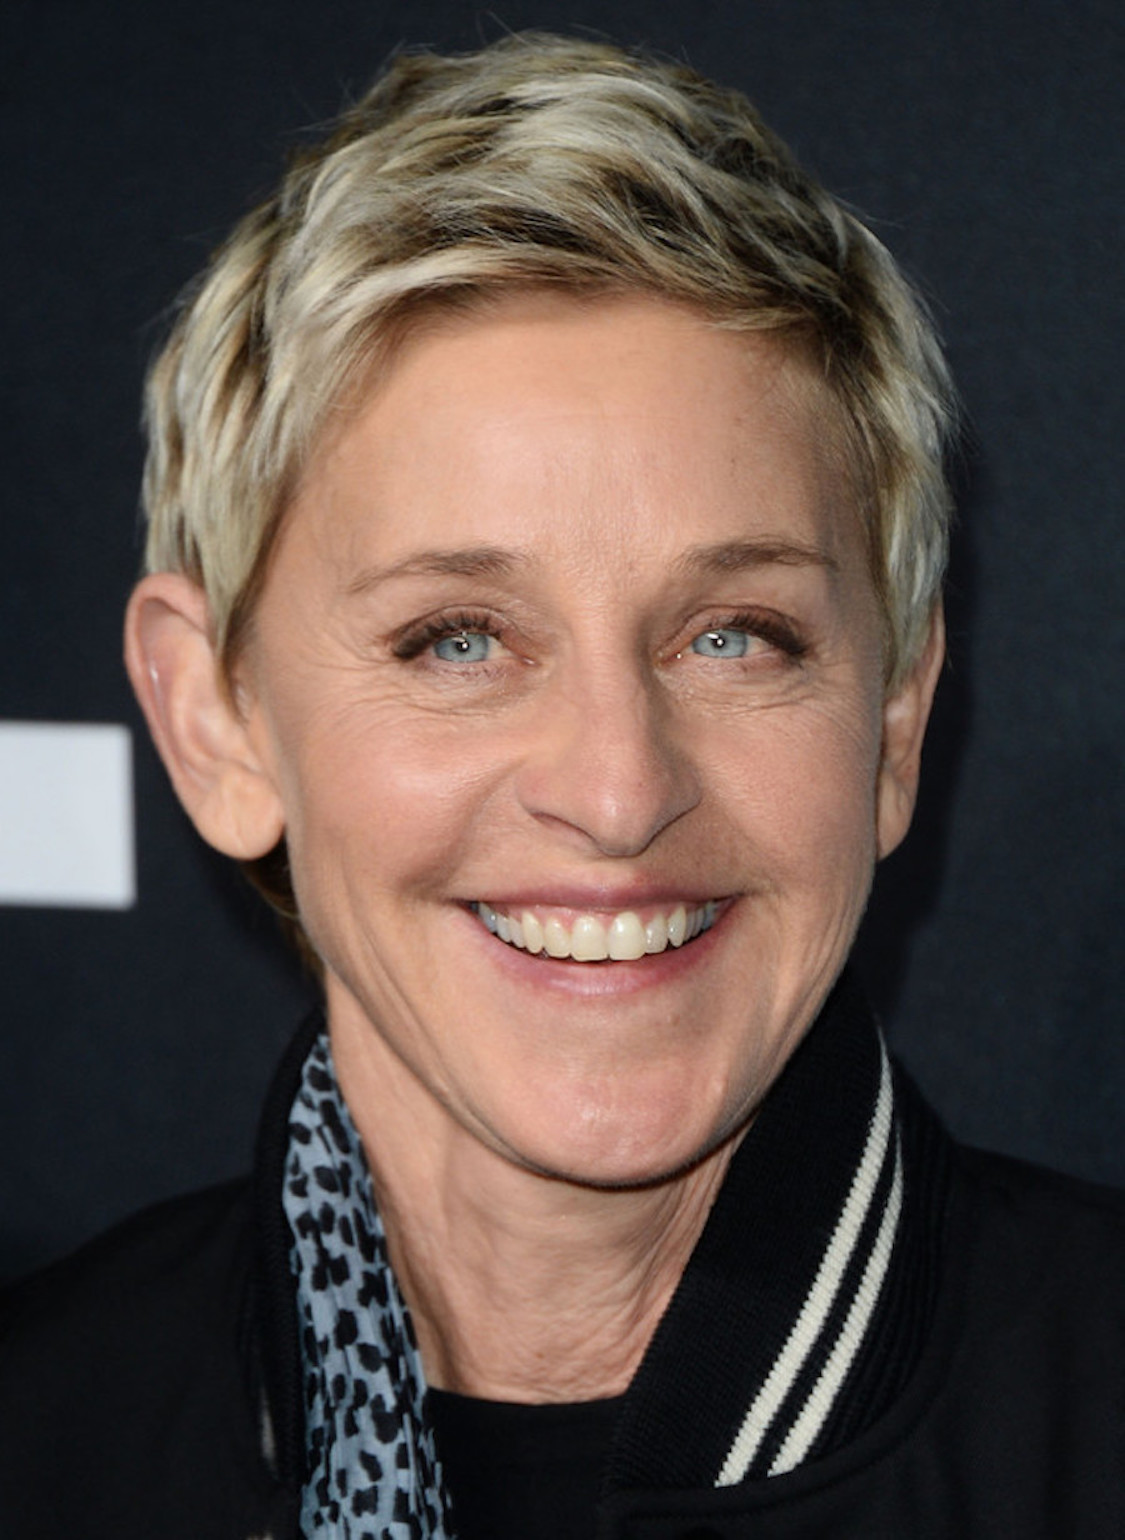 ellen degeneres disney wiki fandom powered by wikia